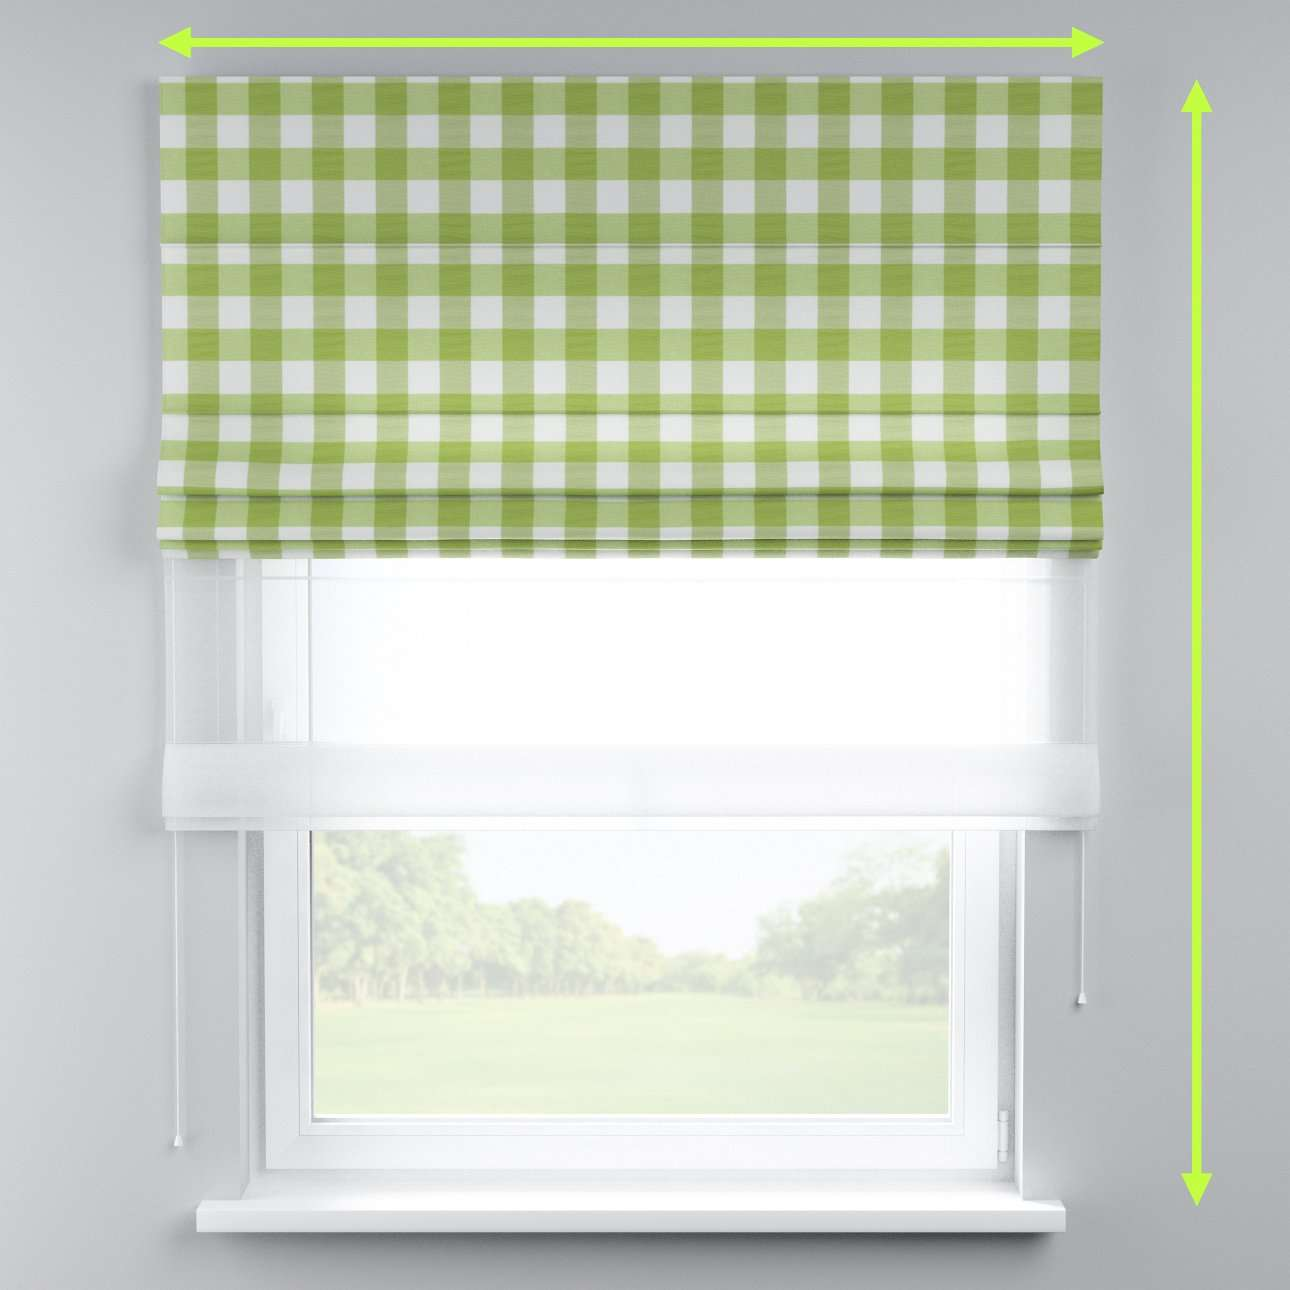 Voile and fabric roman blind (DUO II) in collection Quadro, fabric: 136-36